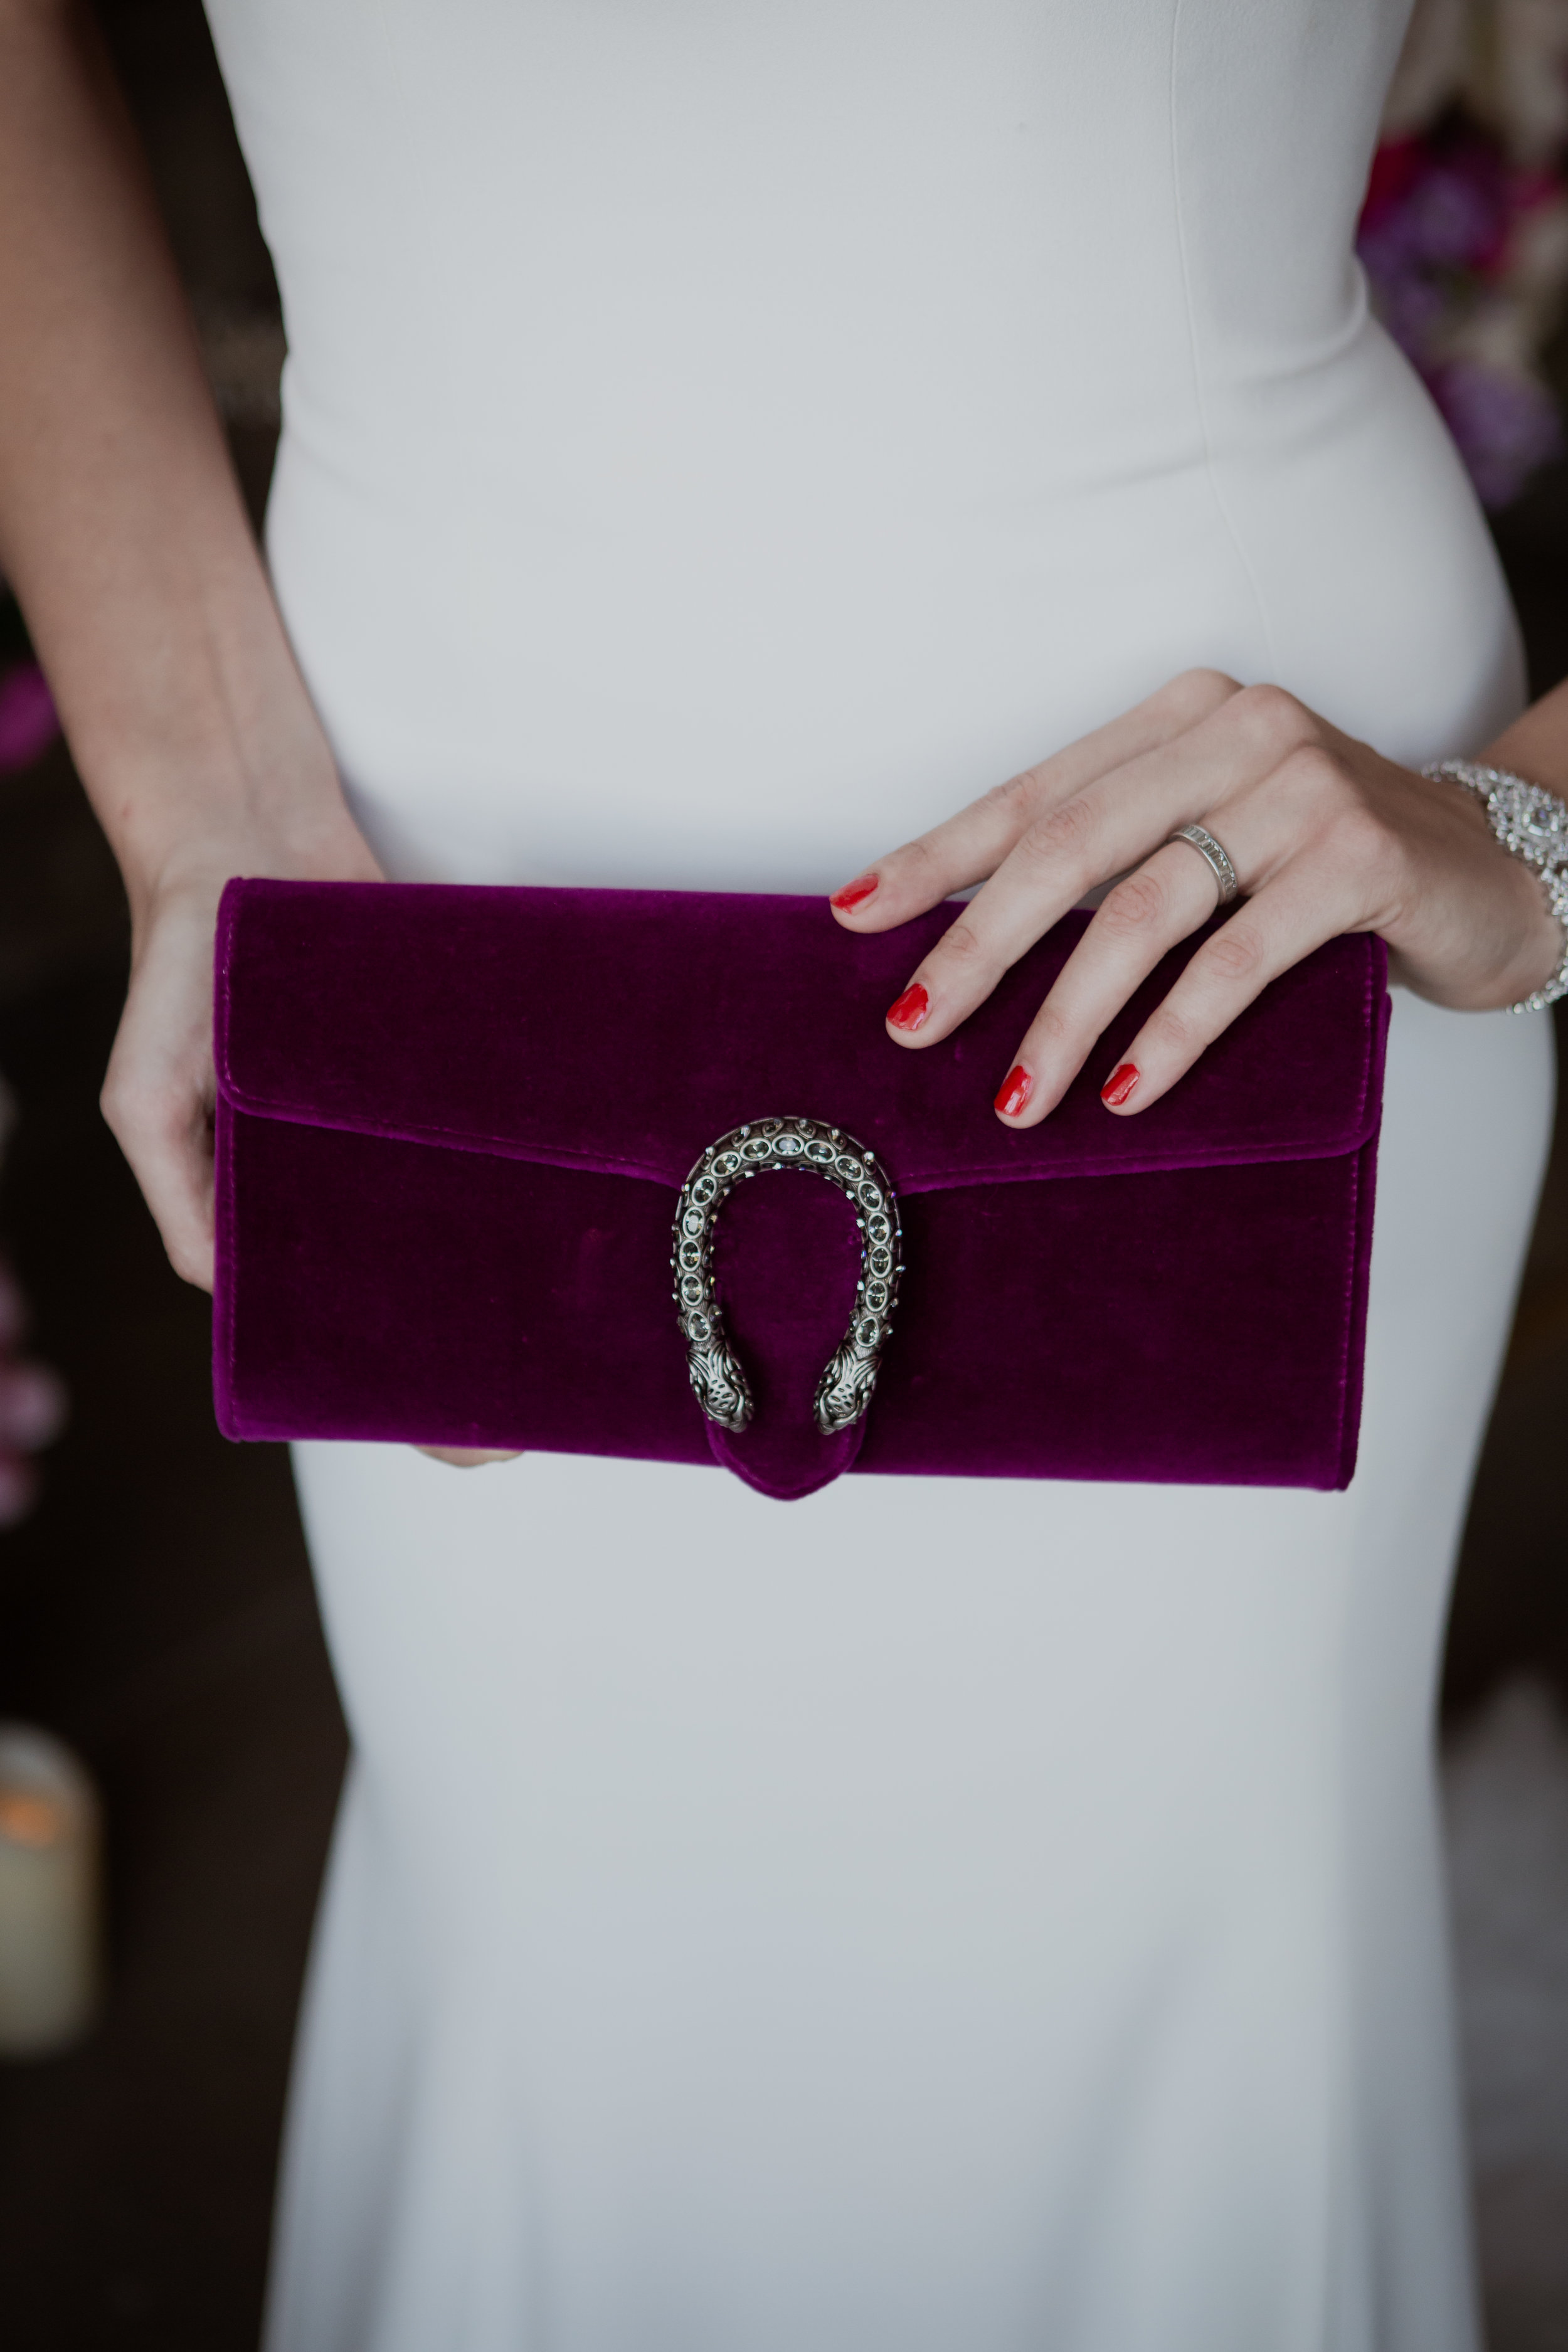 Fuschia Dionysus Velvet Clutch.  Las Vegas Wedding Planner & Event Designer  Andrea Eppolito Events  · Photography by  Adam Frazier Photo  · Video by  M Place Productions  · Floral & Decor by  DBD Las Vegas  · Venue  ARIA Primrose Ballroom  · Cigar Band by  Royal Cigar Company  and  Jason of Beverly Hills  · Beauty by  Glammed Up Las Vegas  · Dress by  Vera Wang  · Salon  Couture Bride Las Vegas  · Shoes  Bella Belle Shoes  · Bride  Katrina May Armenta  · Groom  Lucas Cuevas